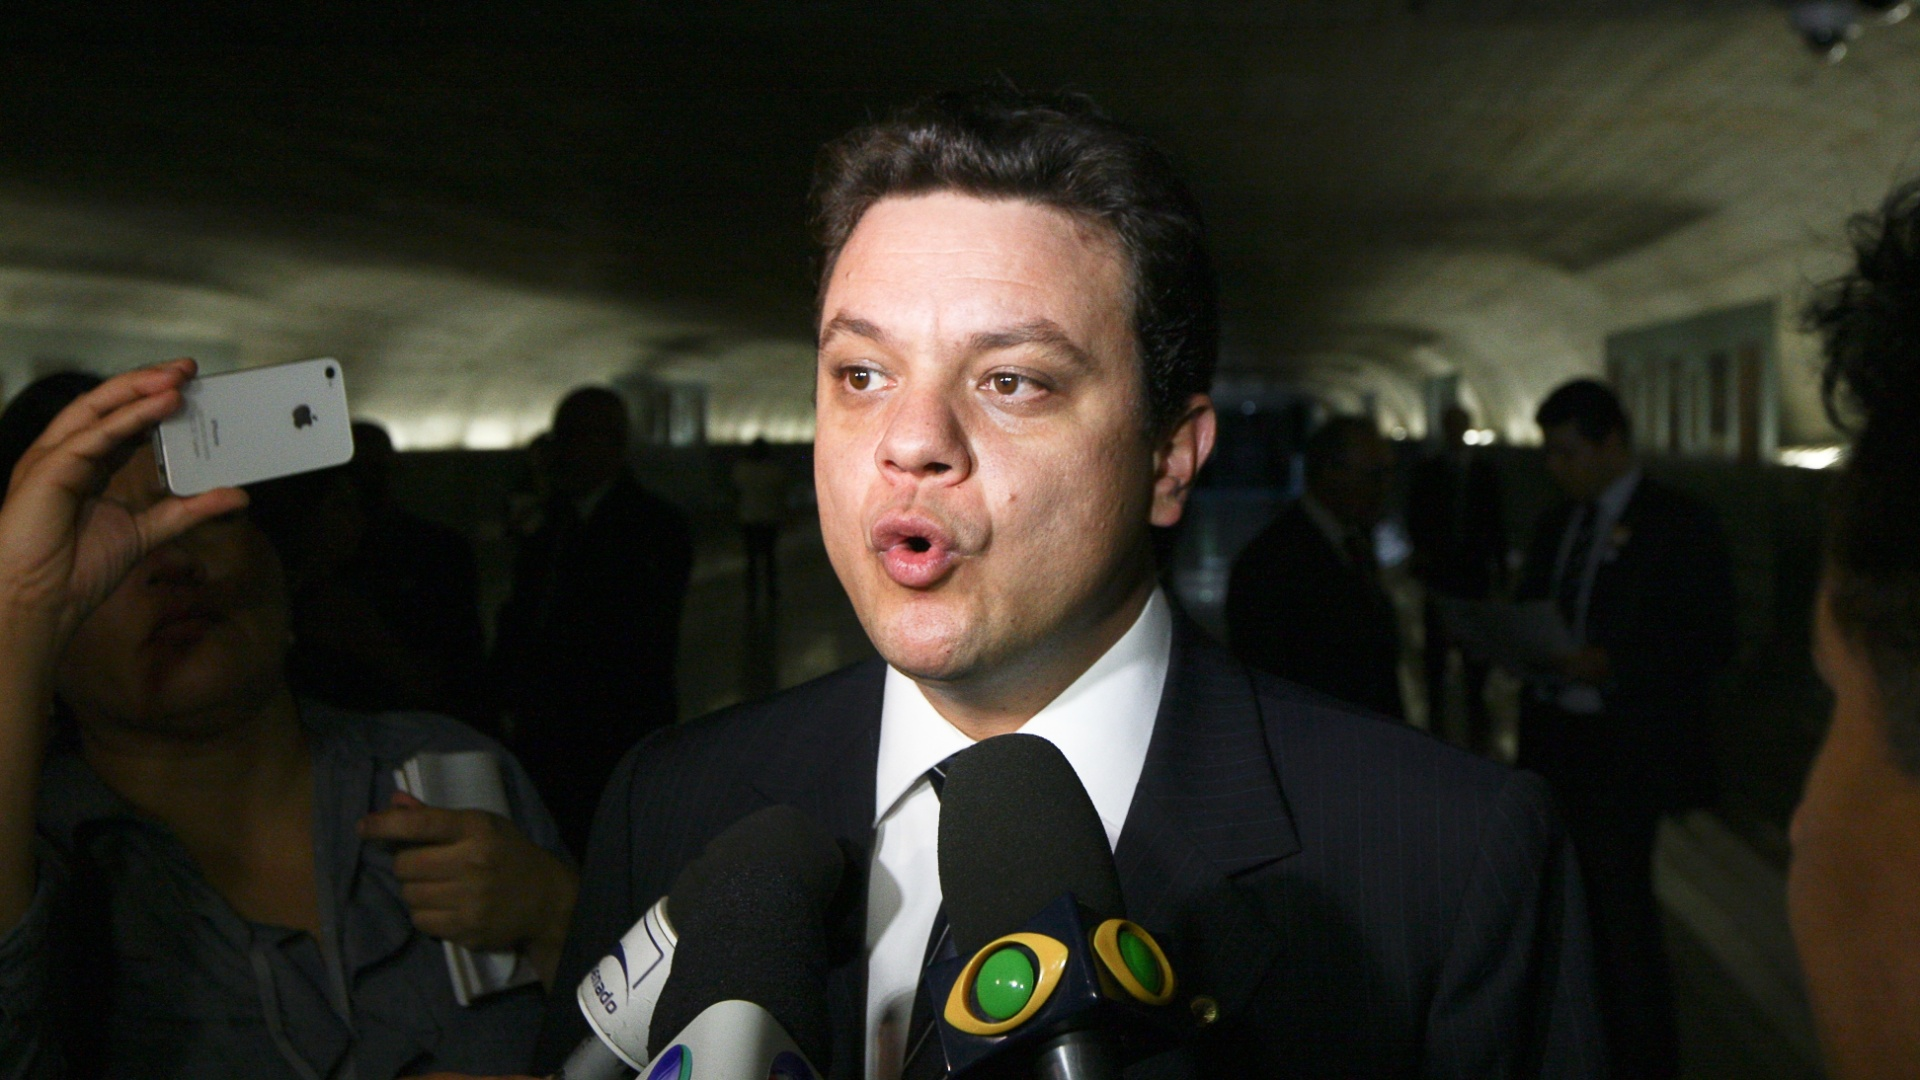 Relator da CPI (Comisso Parlamentar de Inqurito) do Cachoeira, o deputado Odair Cunha (PT-MG) disse que j apresentou seu relatrio  comisso e que o documento deve ser lido na reunio desta quarta-feira (21)